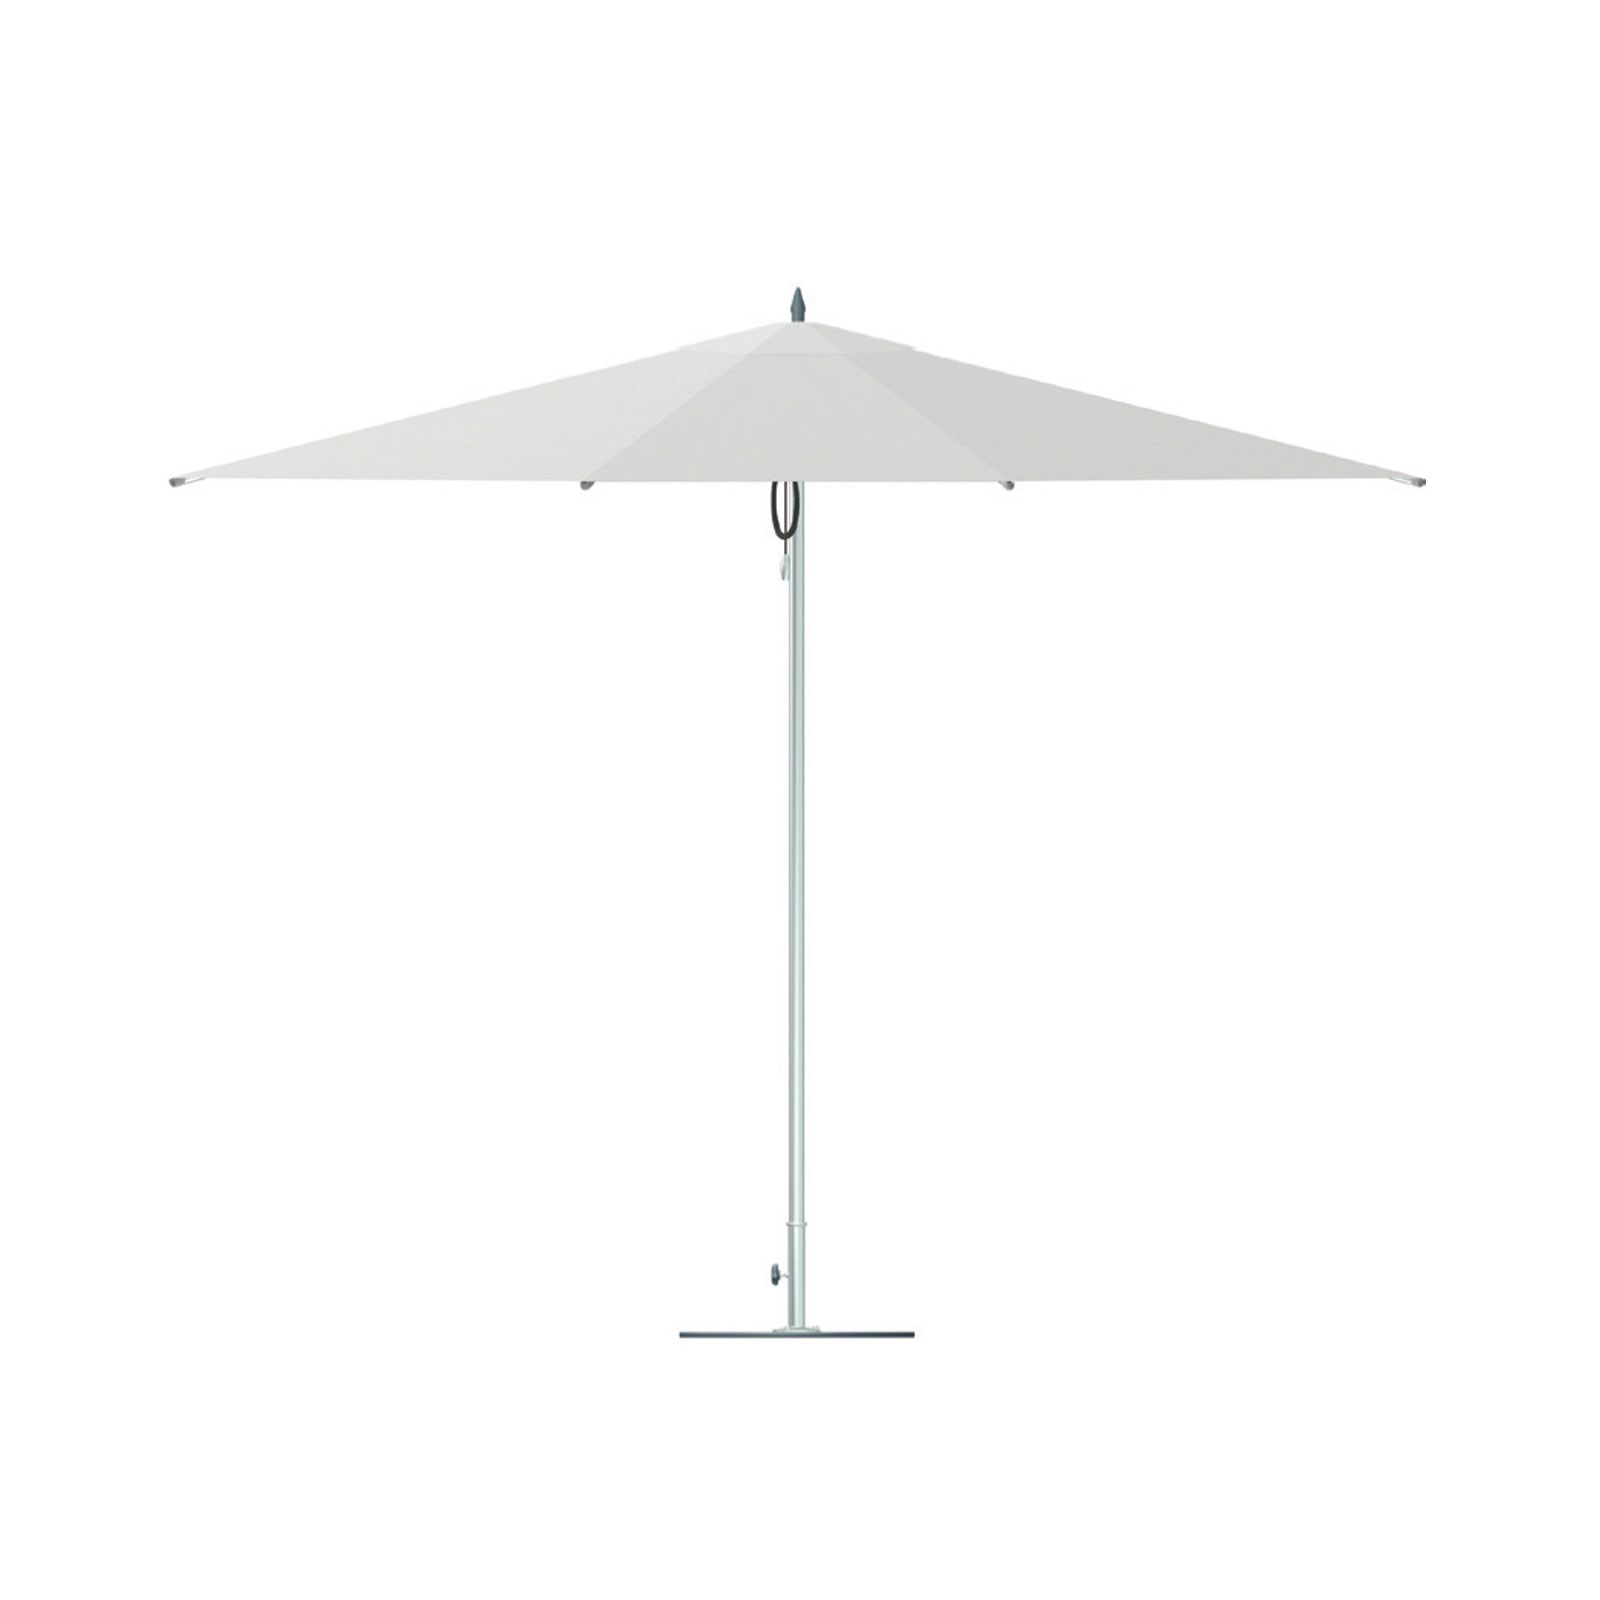 8' SQ Umbrella - Ocean Master Classic